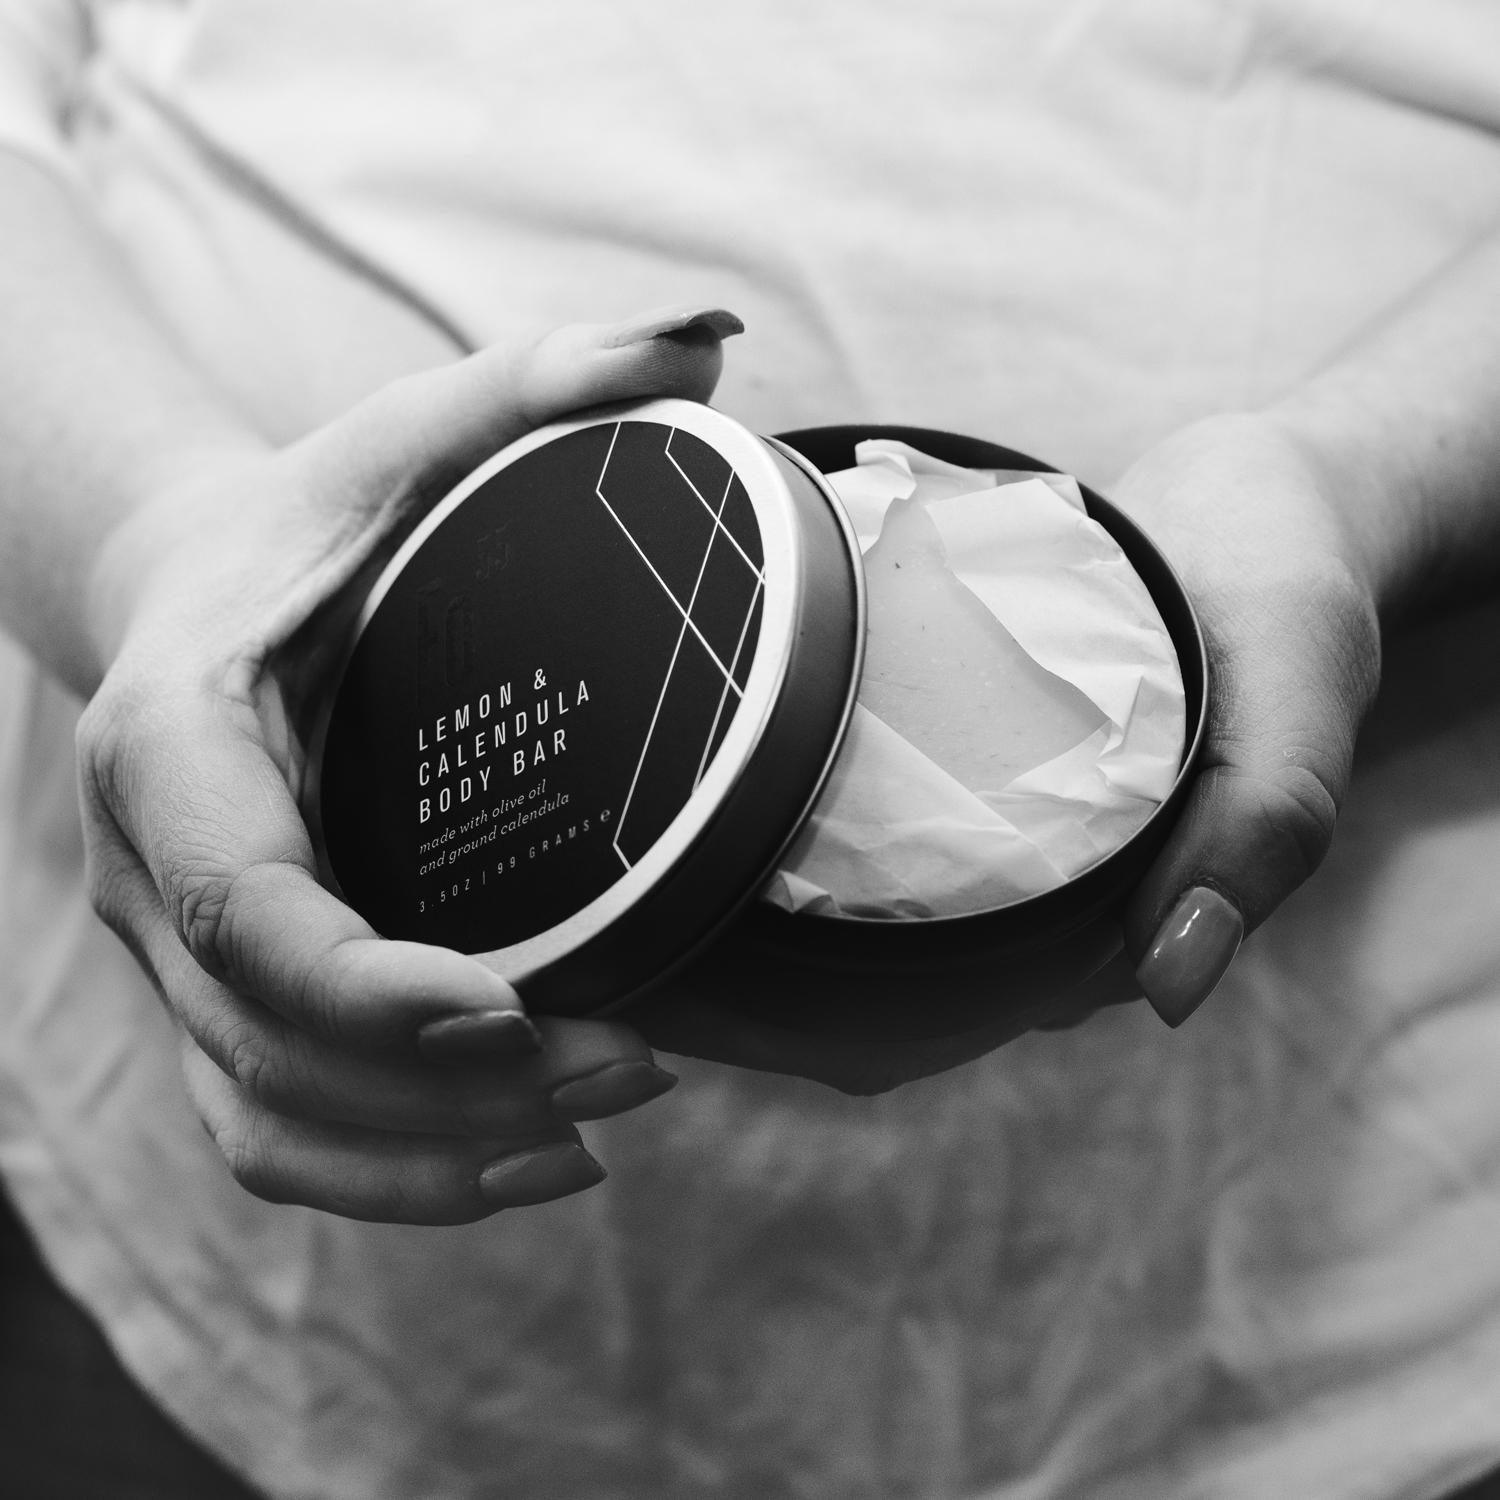 product photography with woman's hands